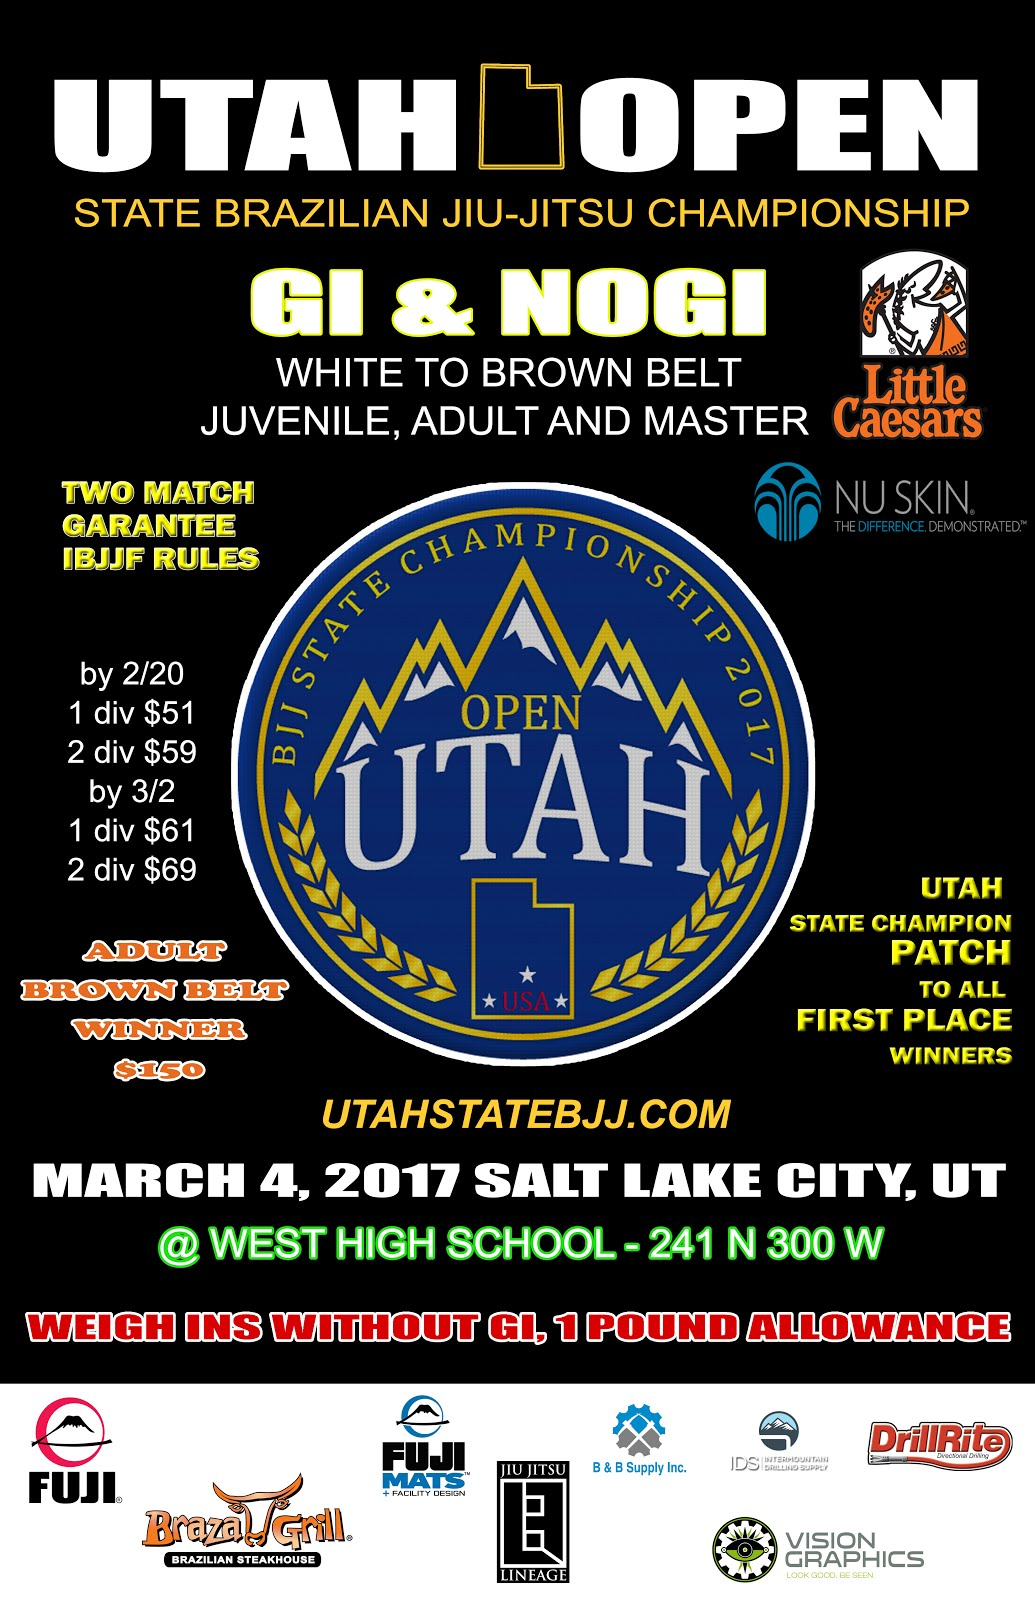 UTAH OPEN MARCH 4TH